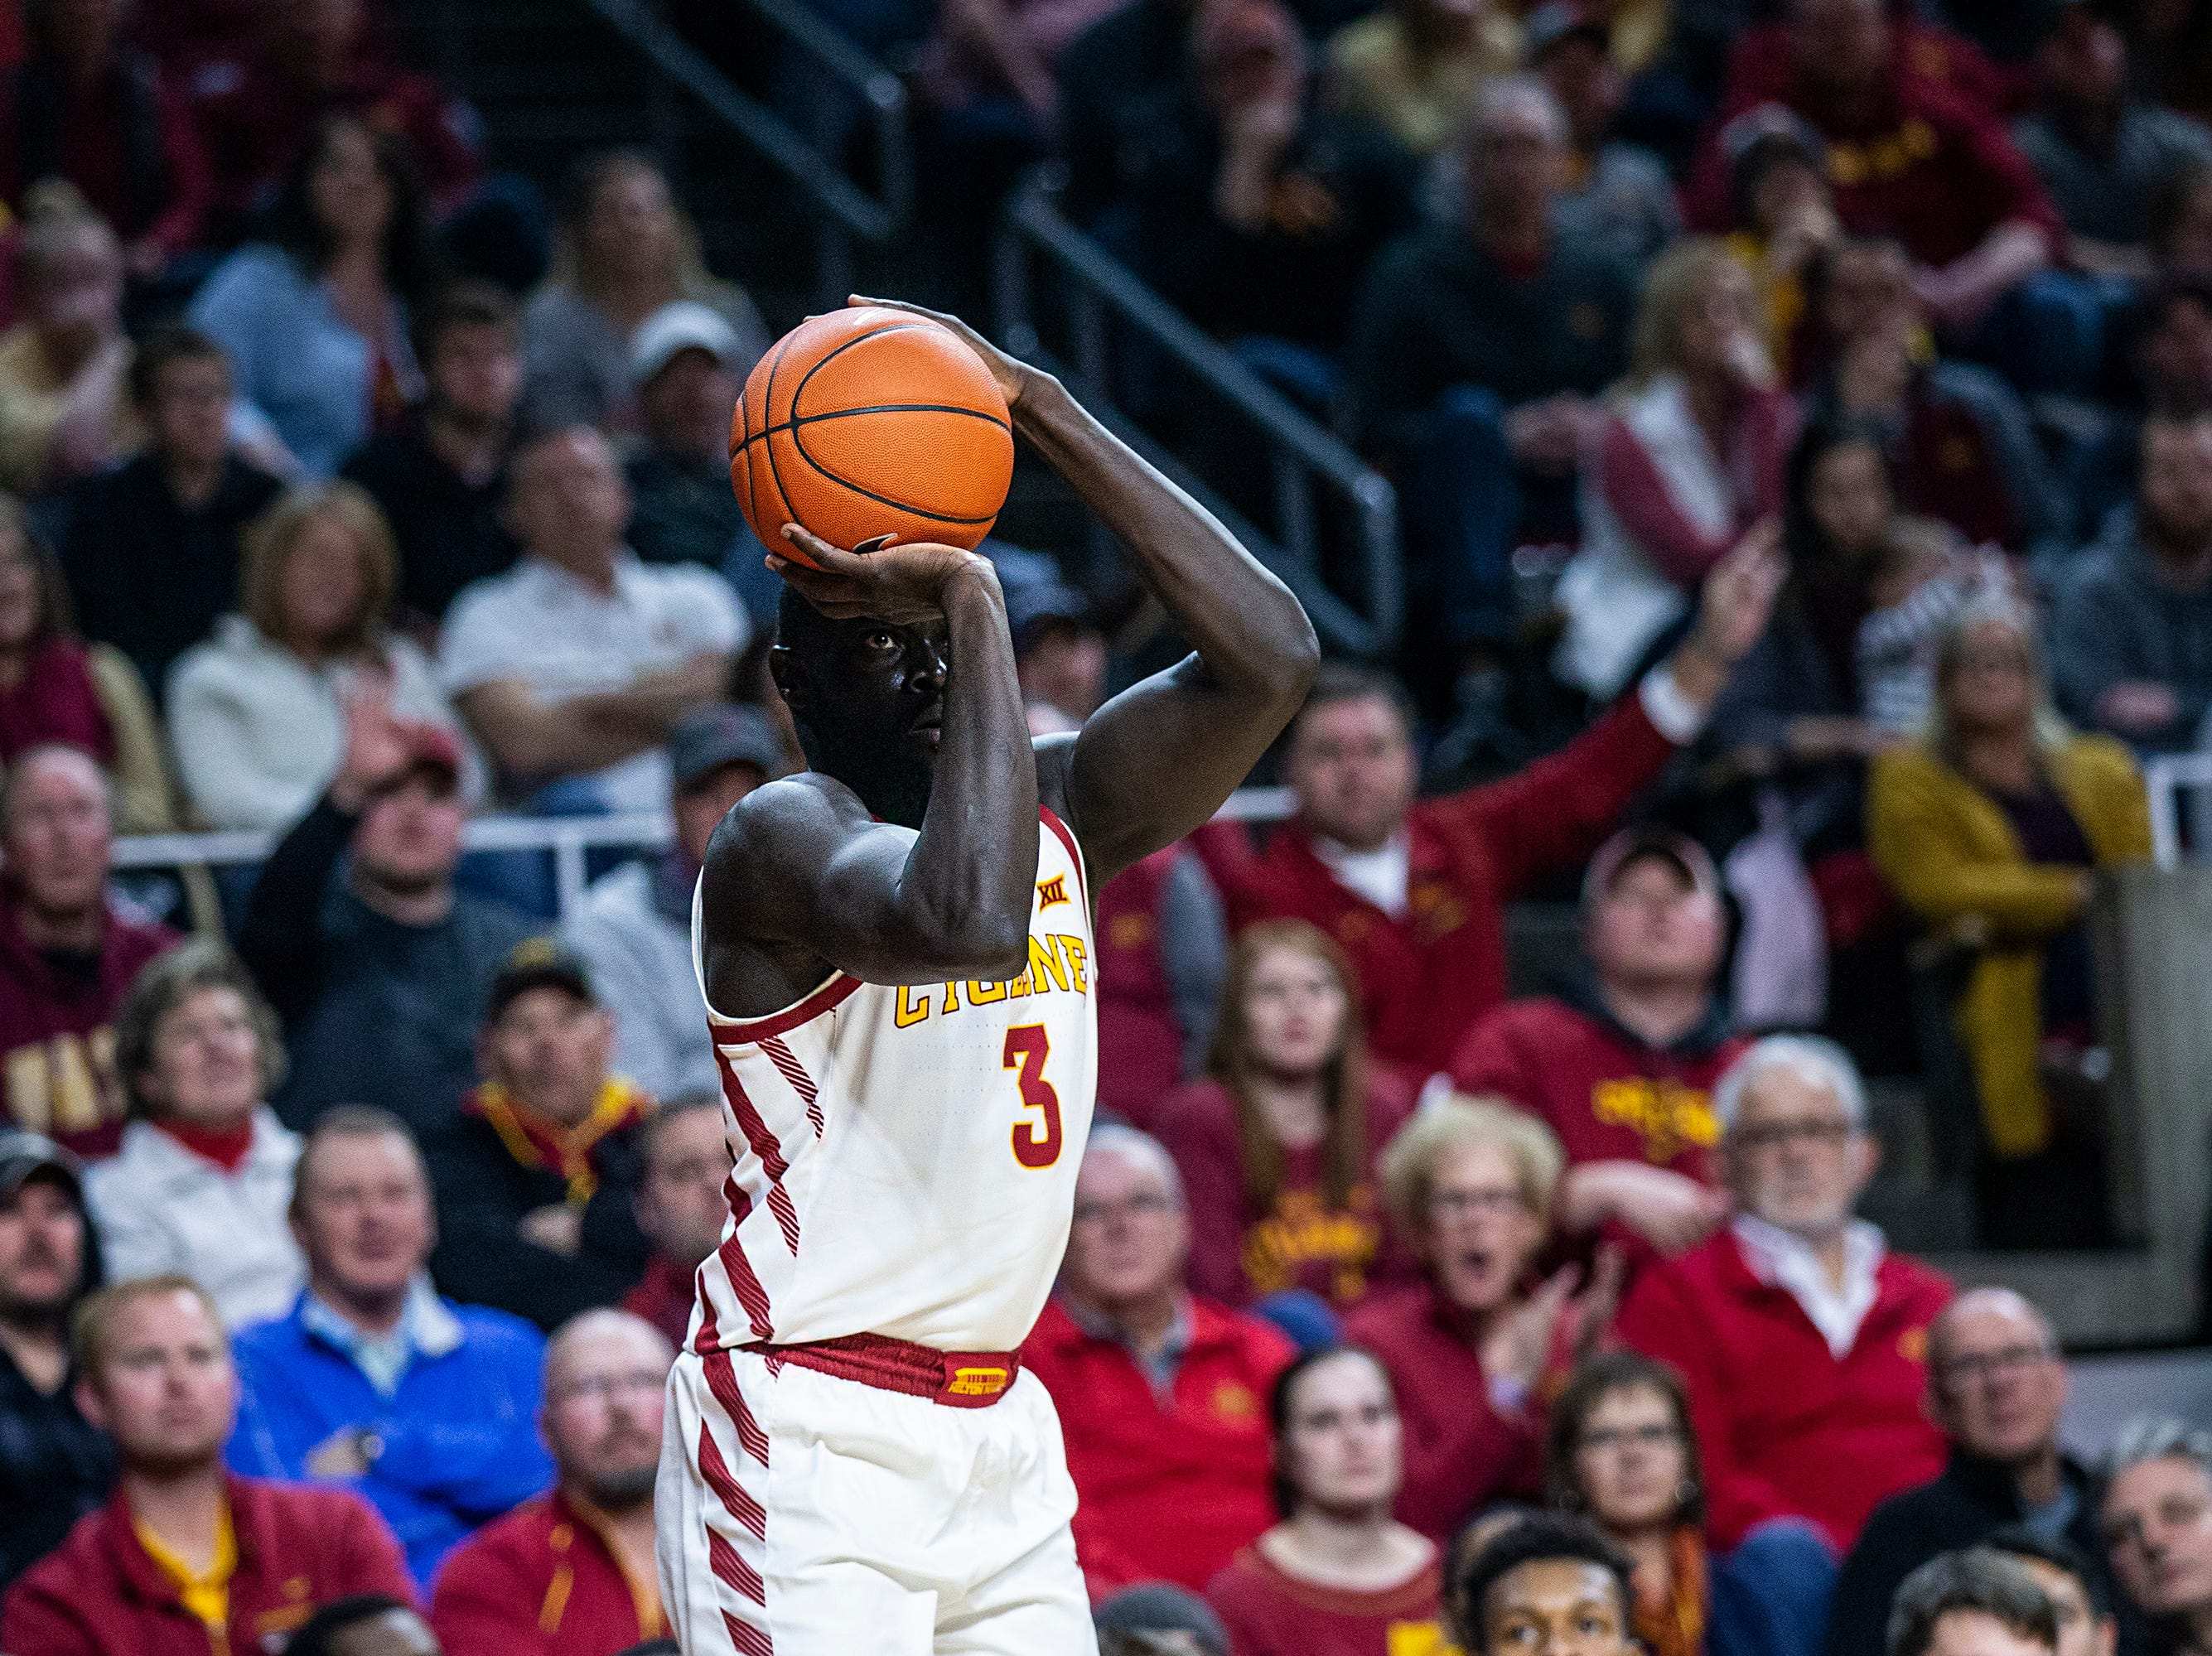 Iowa State's Marial Shayok shoots a three-point-shot during the Iowa State men's basketball game against Baylor on Tuesday, Feb. 19, 2019, in Hilton Coliseum.